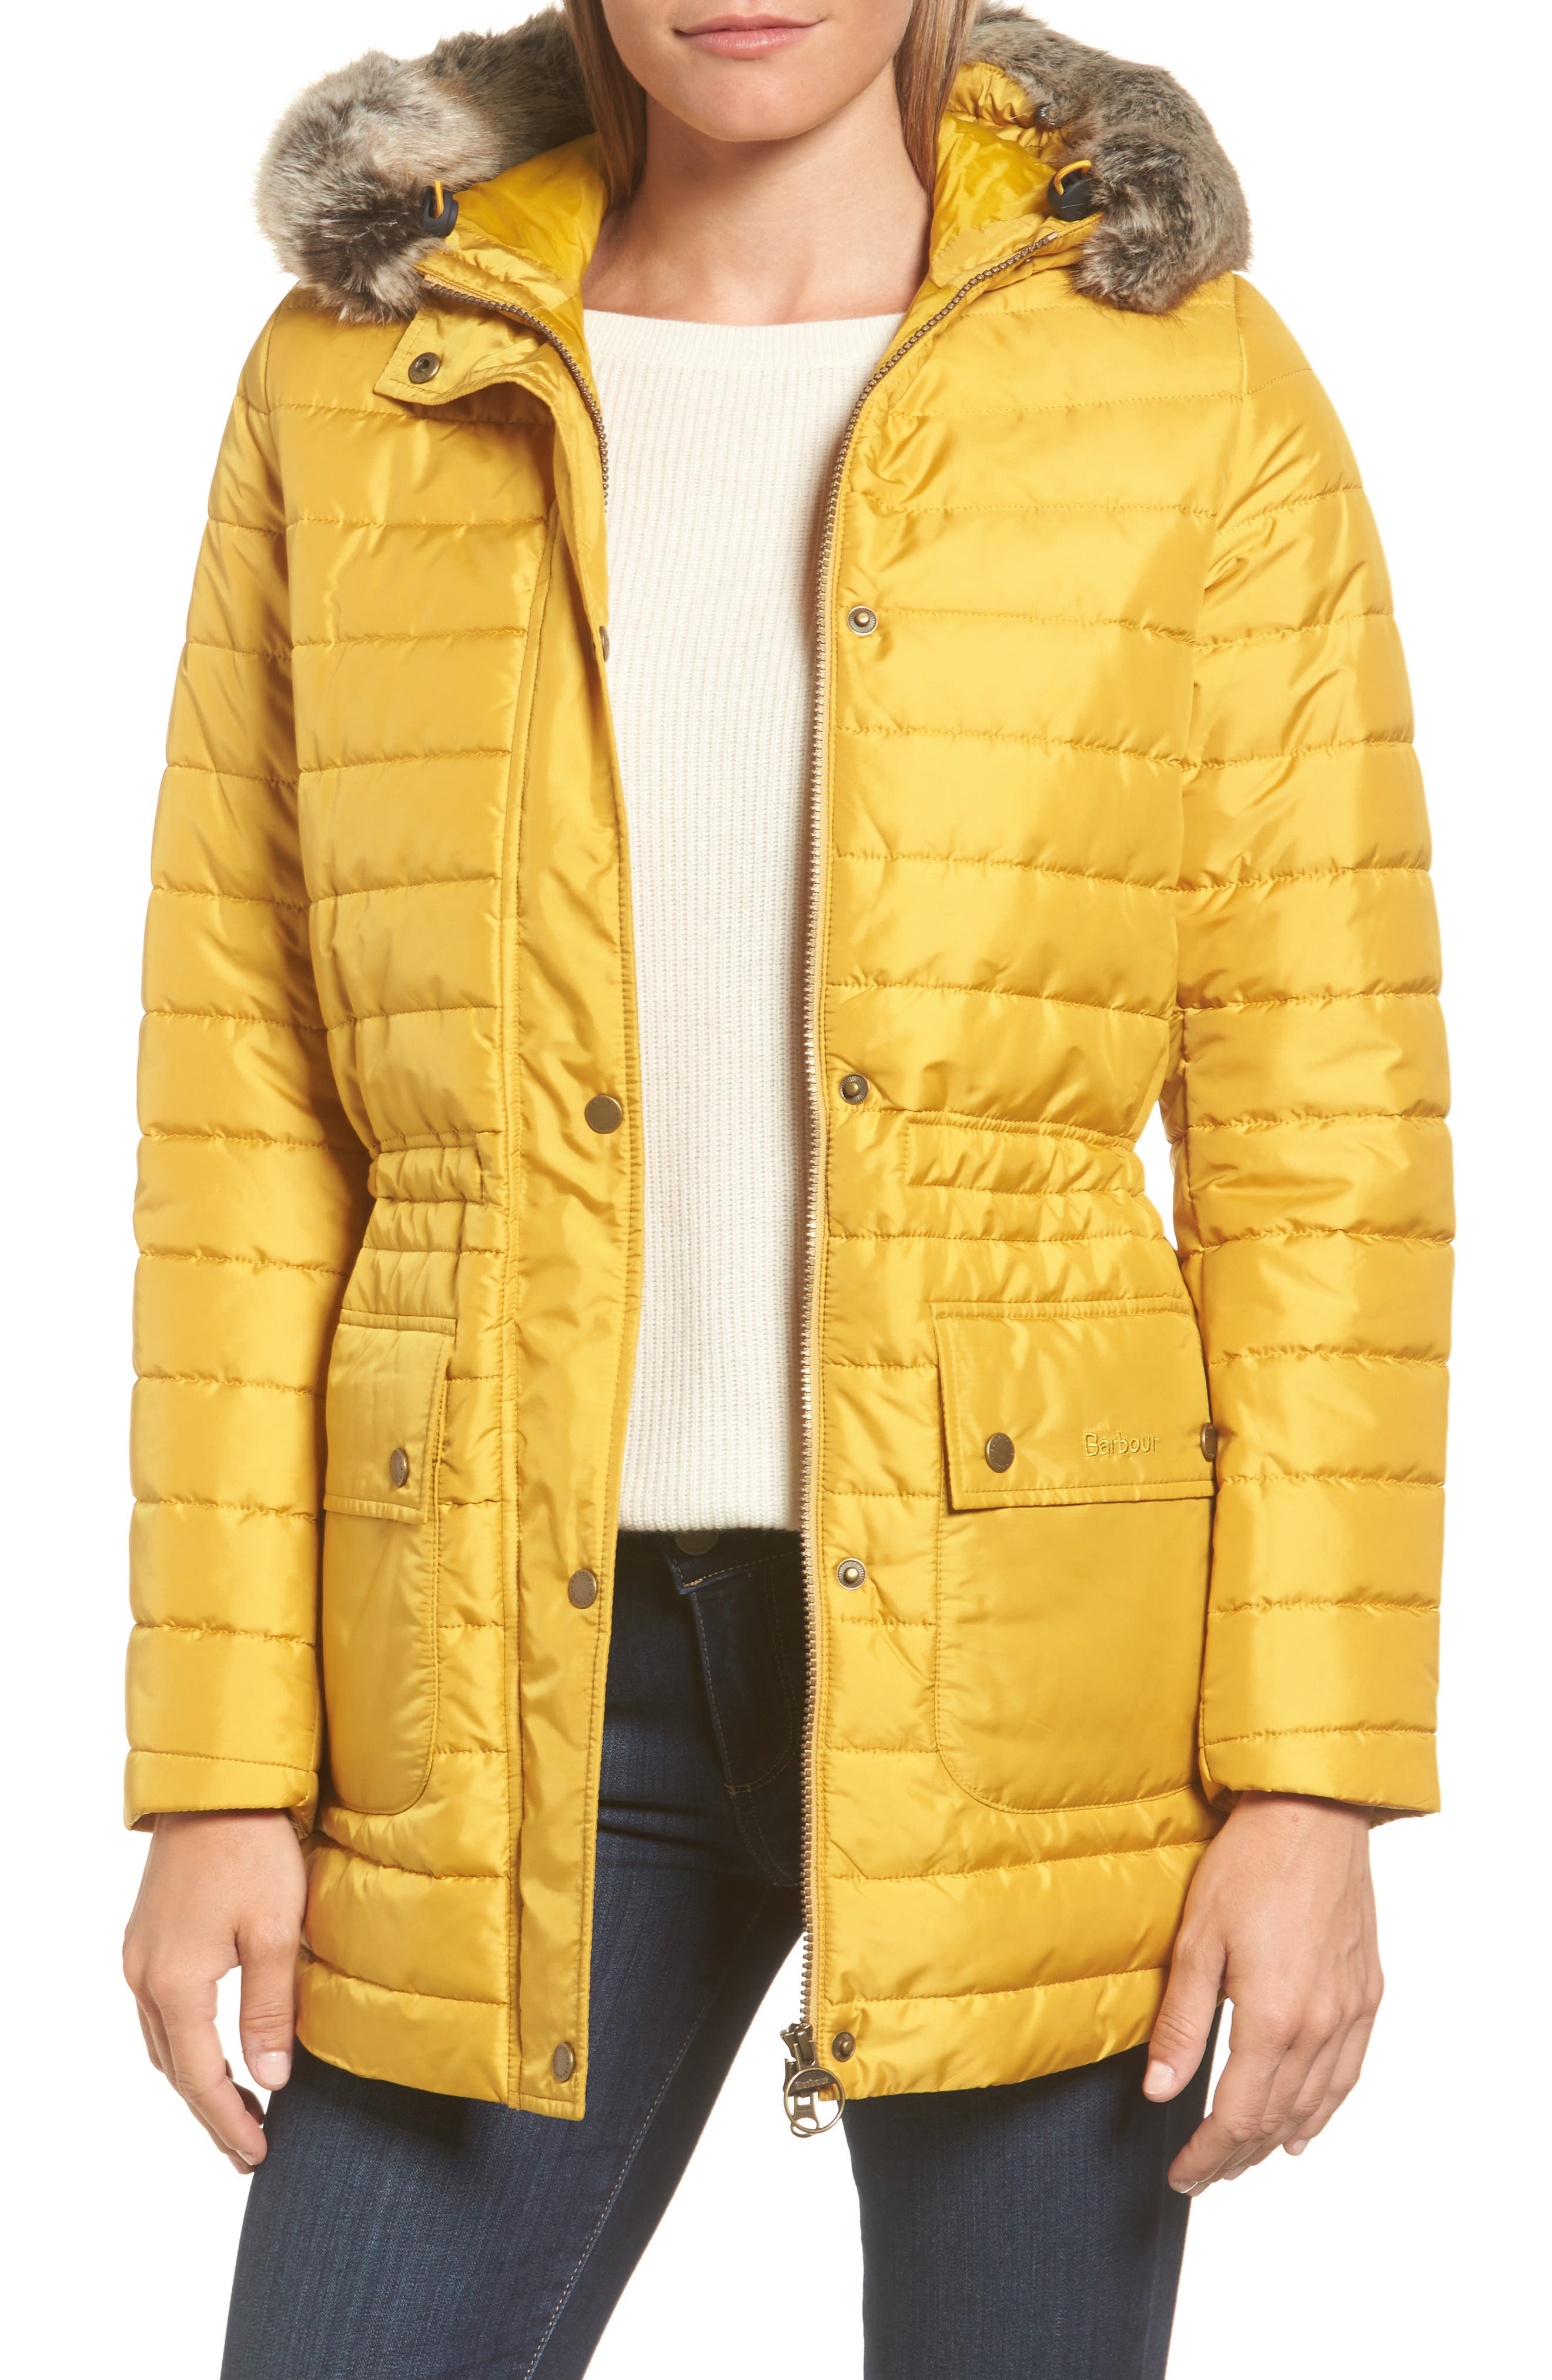 Main Image - Barbour Ascott Water Resistant Quilted Jacket